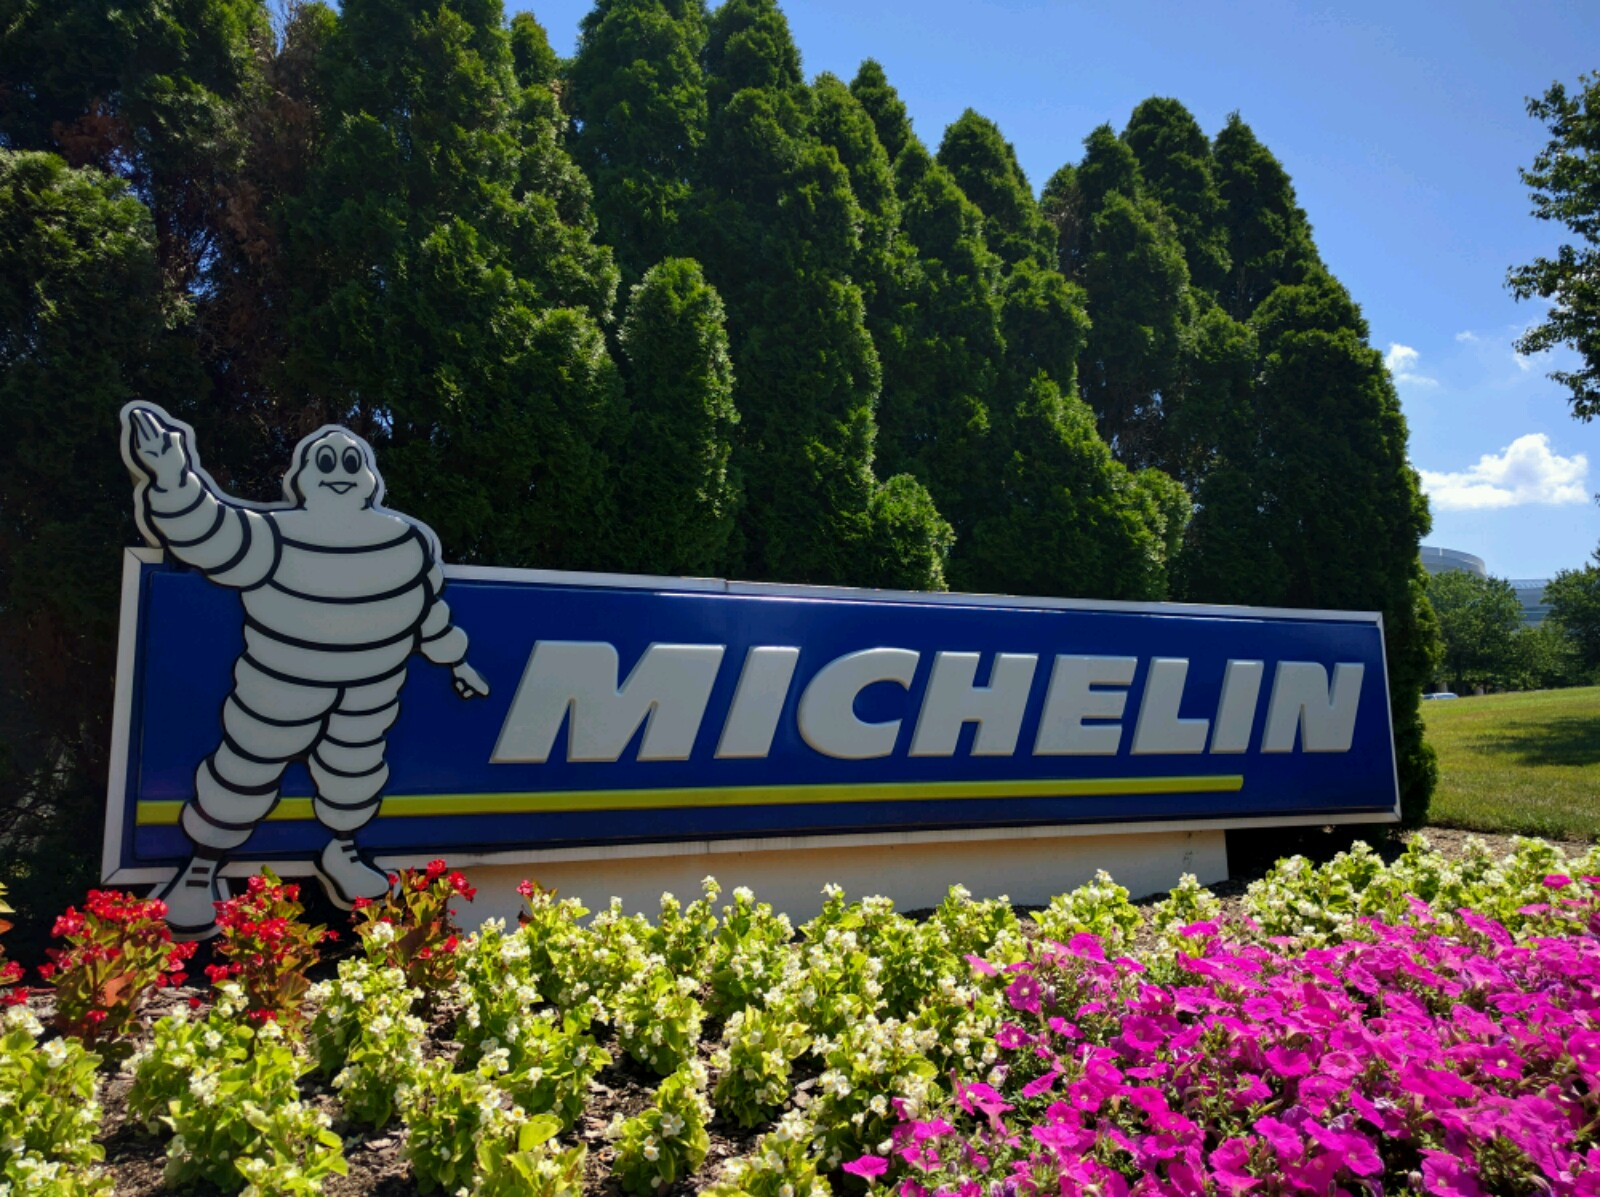 Entrance to Michelin's North American headquarters in Greenville, South Carolina.